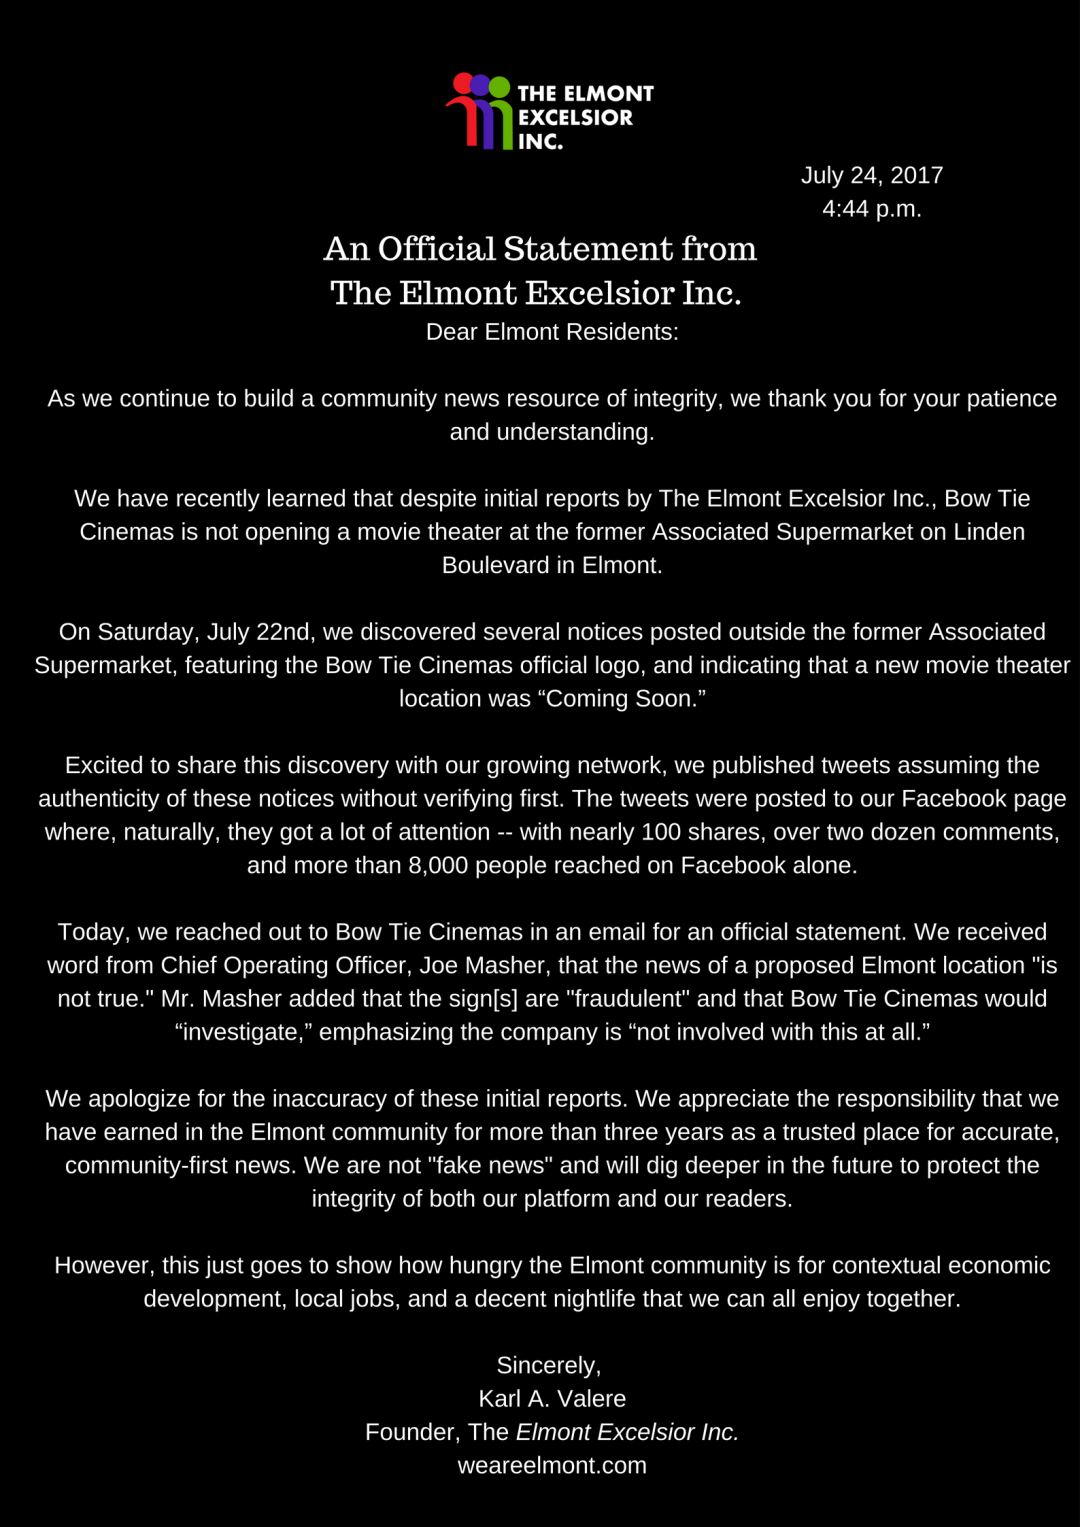 The Elmont Excelsior Inc - An Official Statement on Bow Tie Cinemas Movie Theater